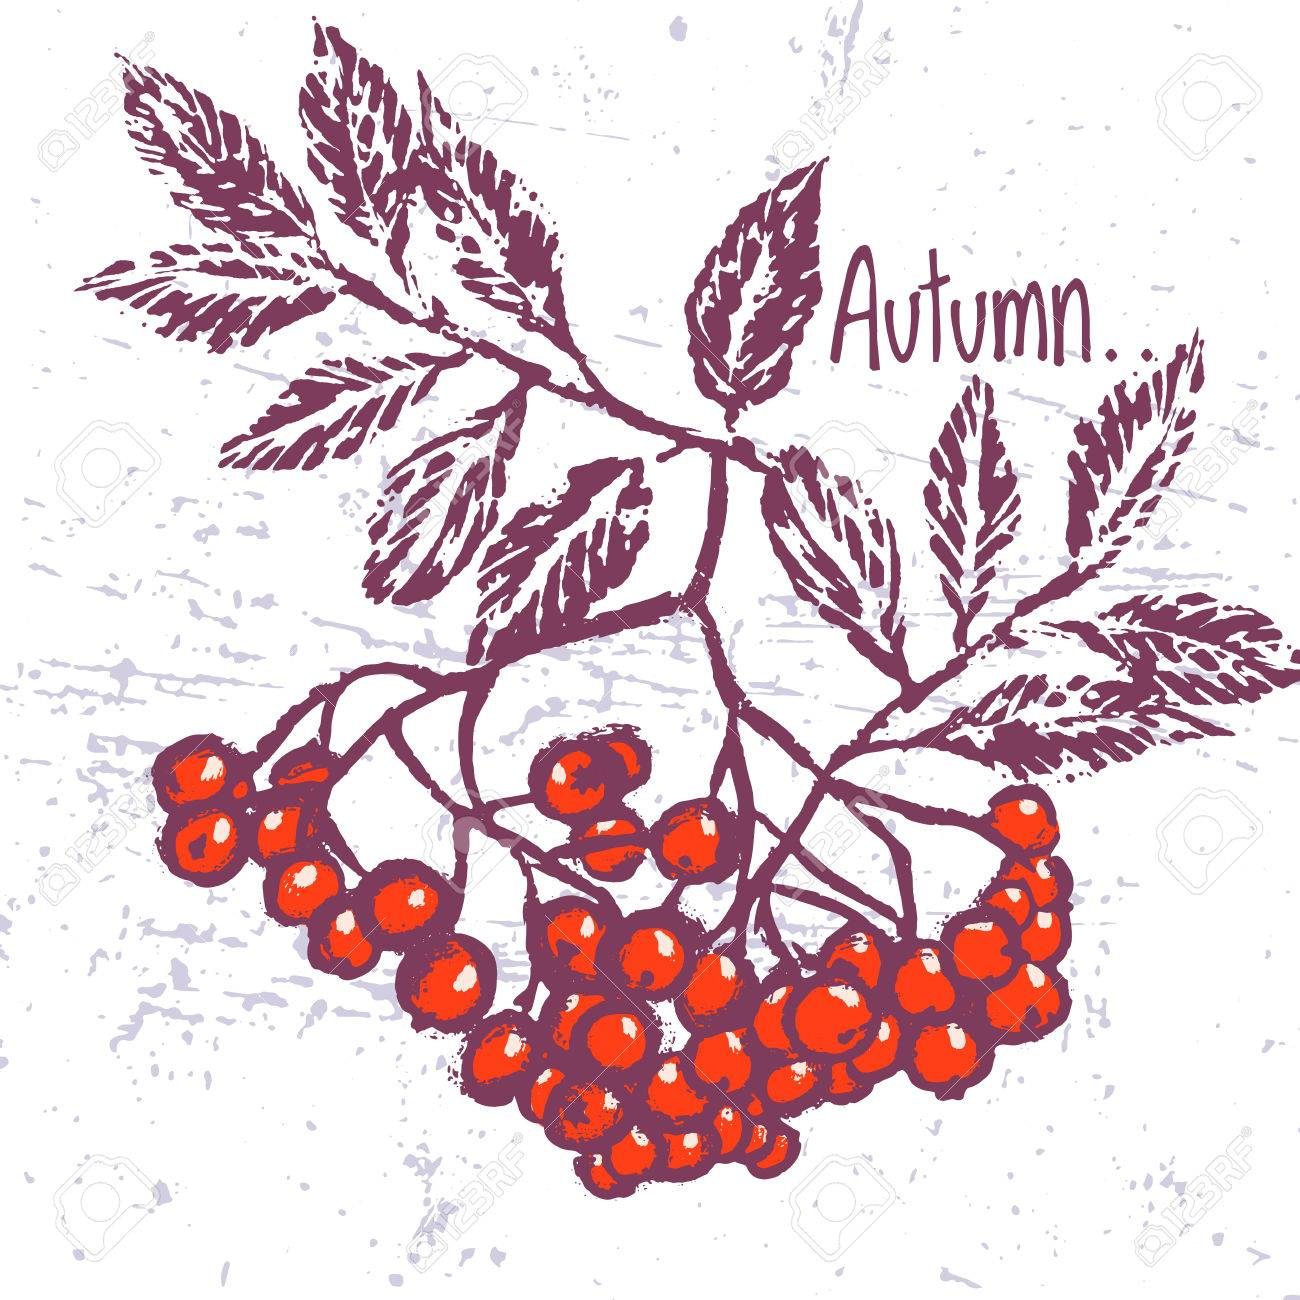 Vector background with rowan ornament - 65077788